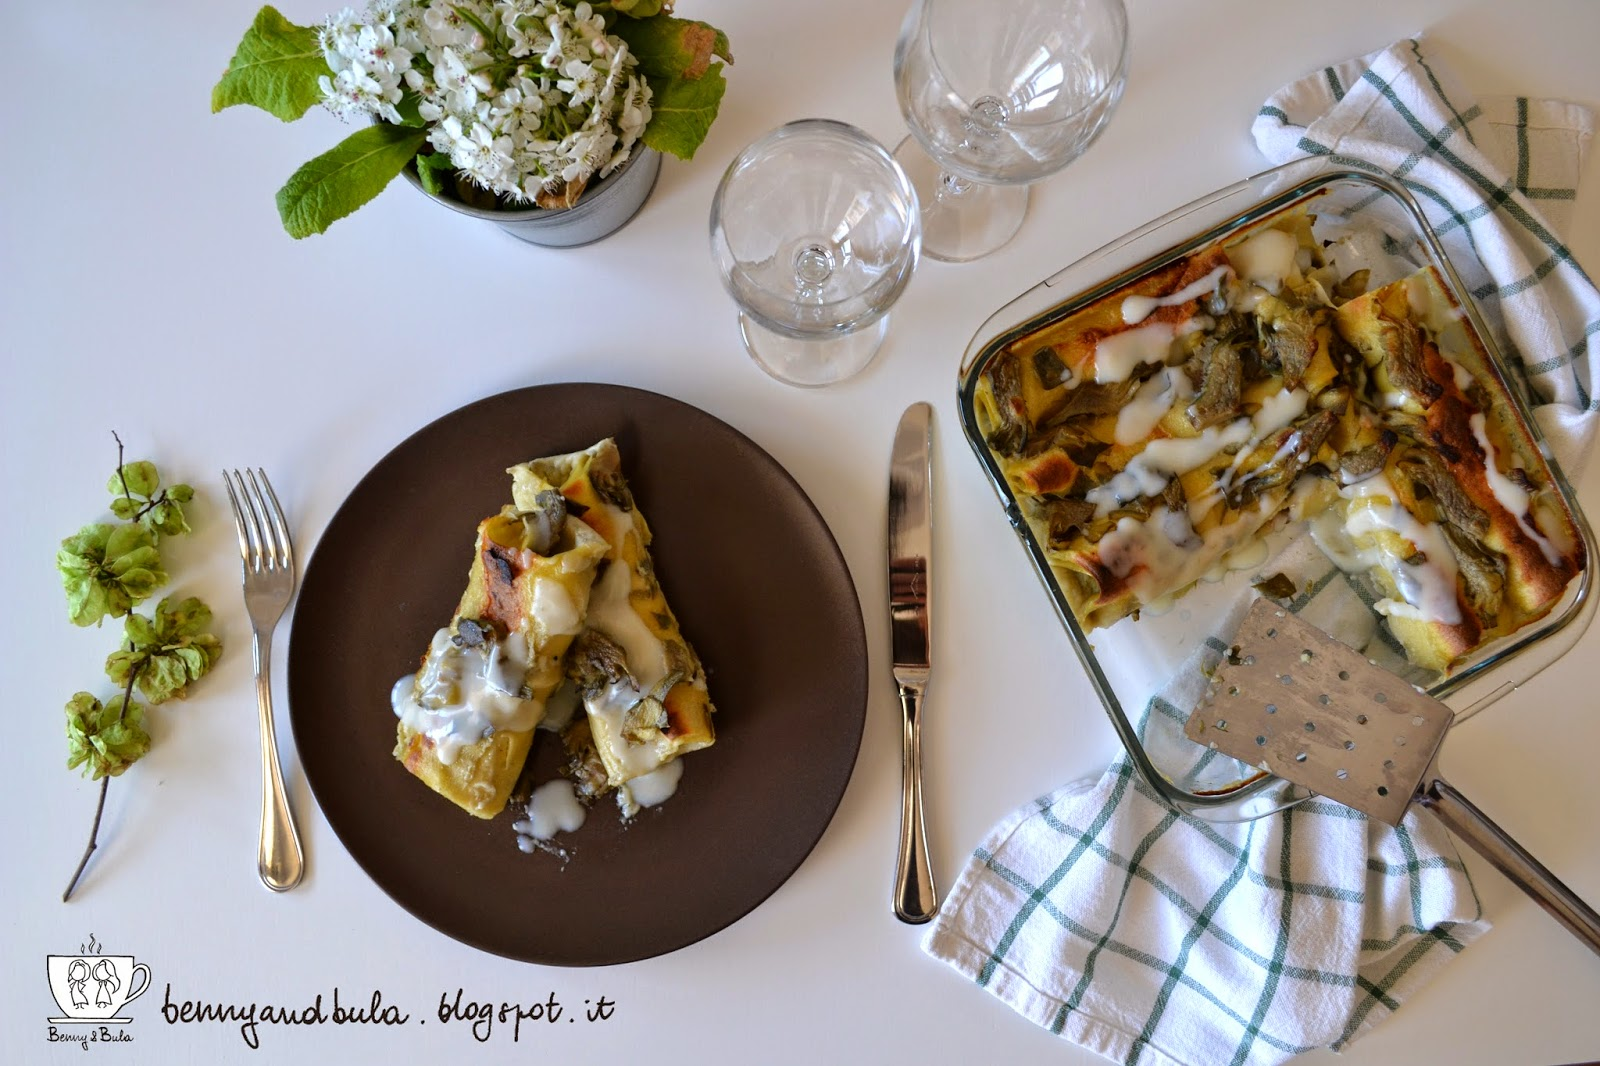 ricetta cannelloni ai carciofi light, pranzo di pasqua / light artichokes homemade pasta recipe